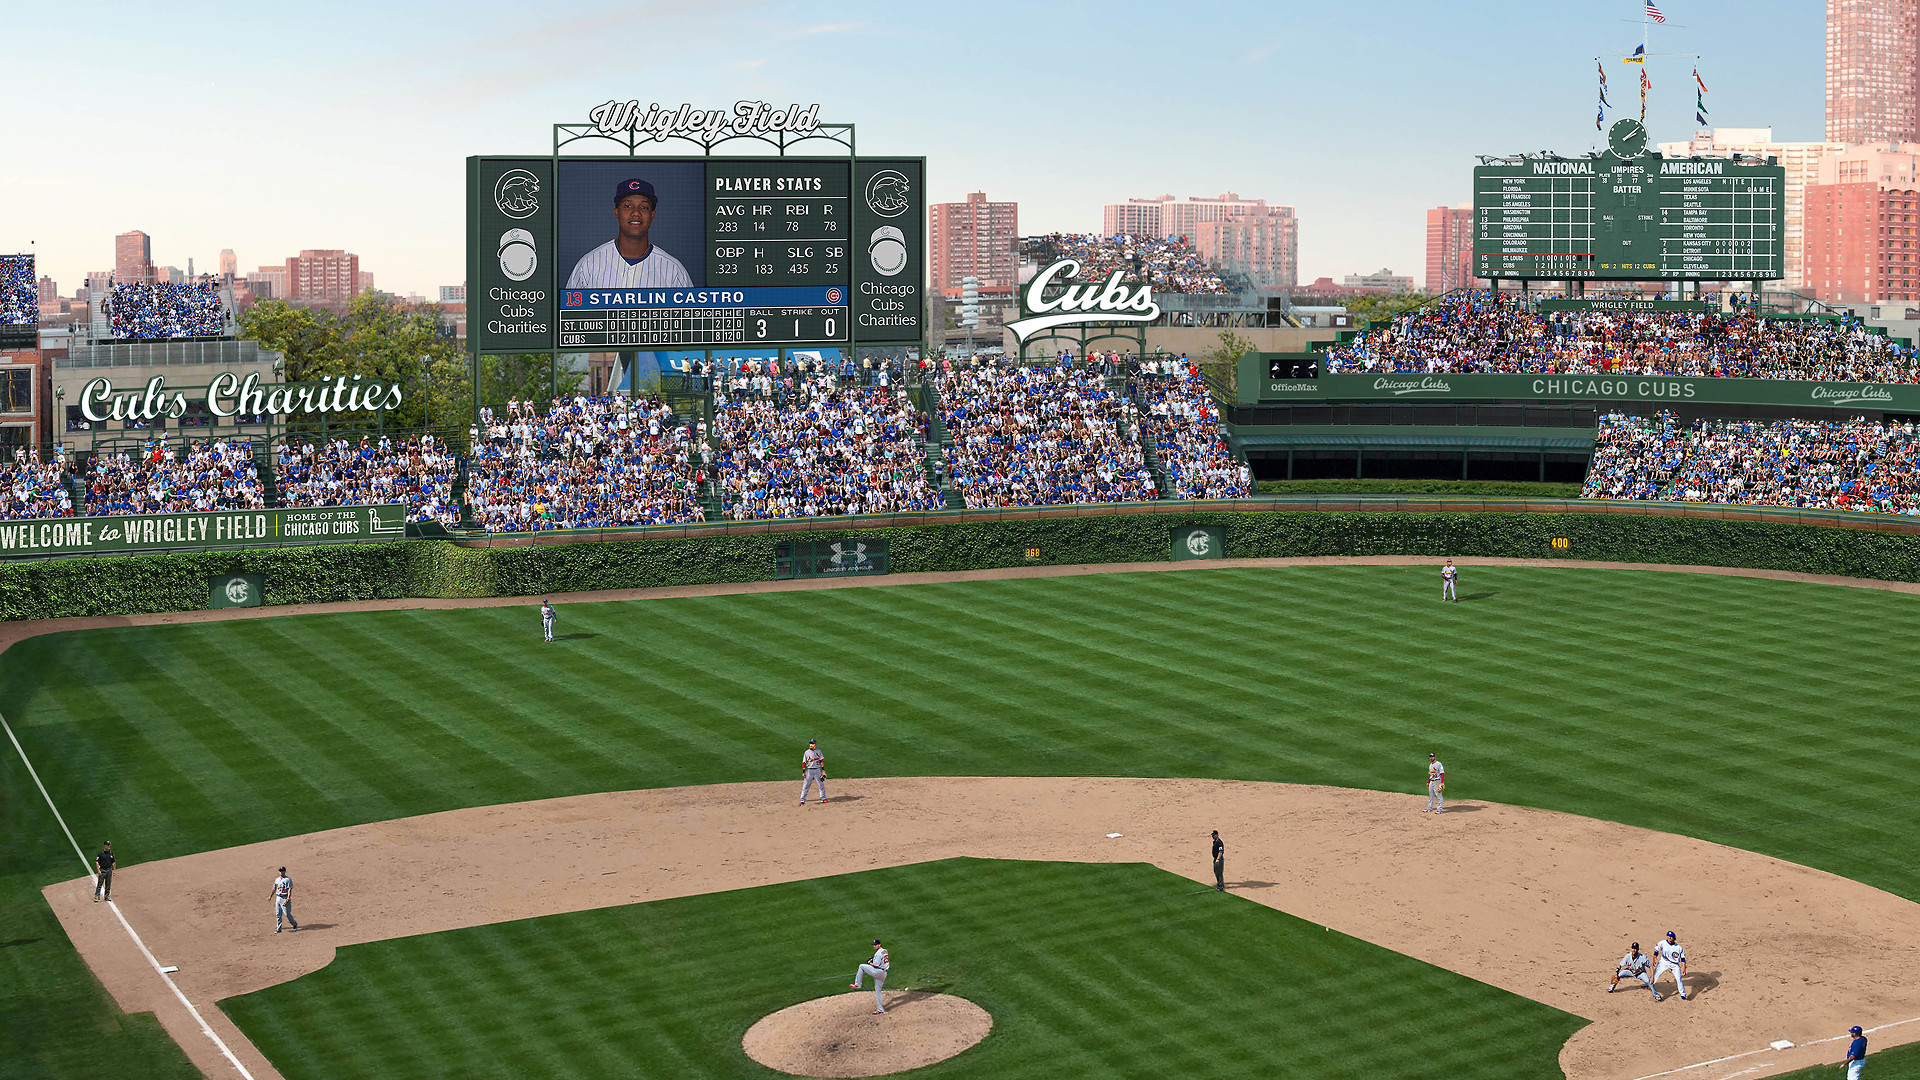 1920x1080 Landmark commission to vote on proposed Wrigley Field changes